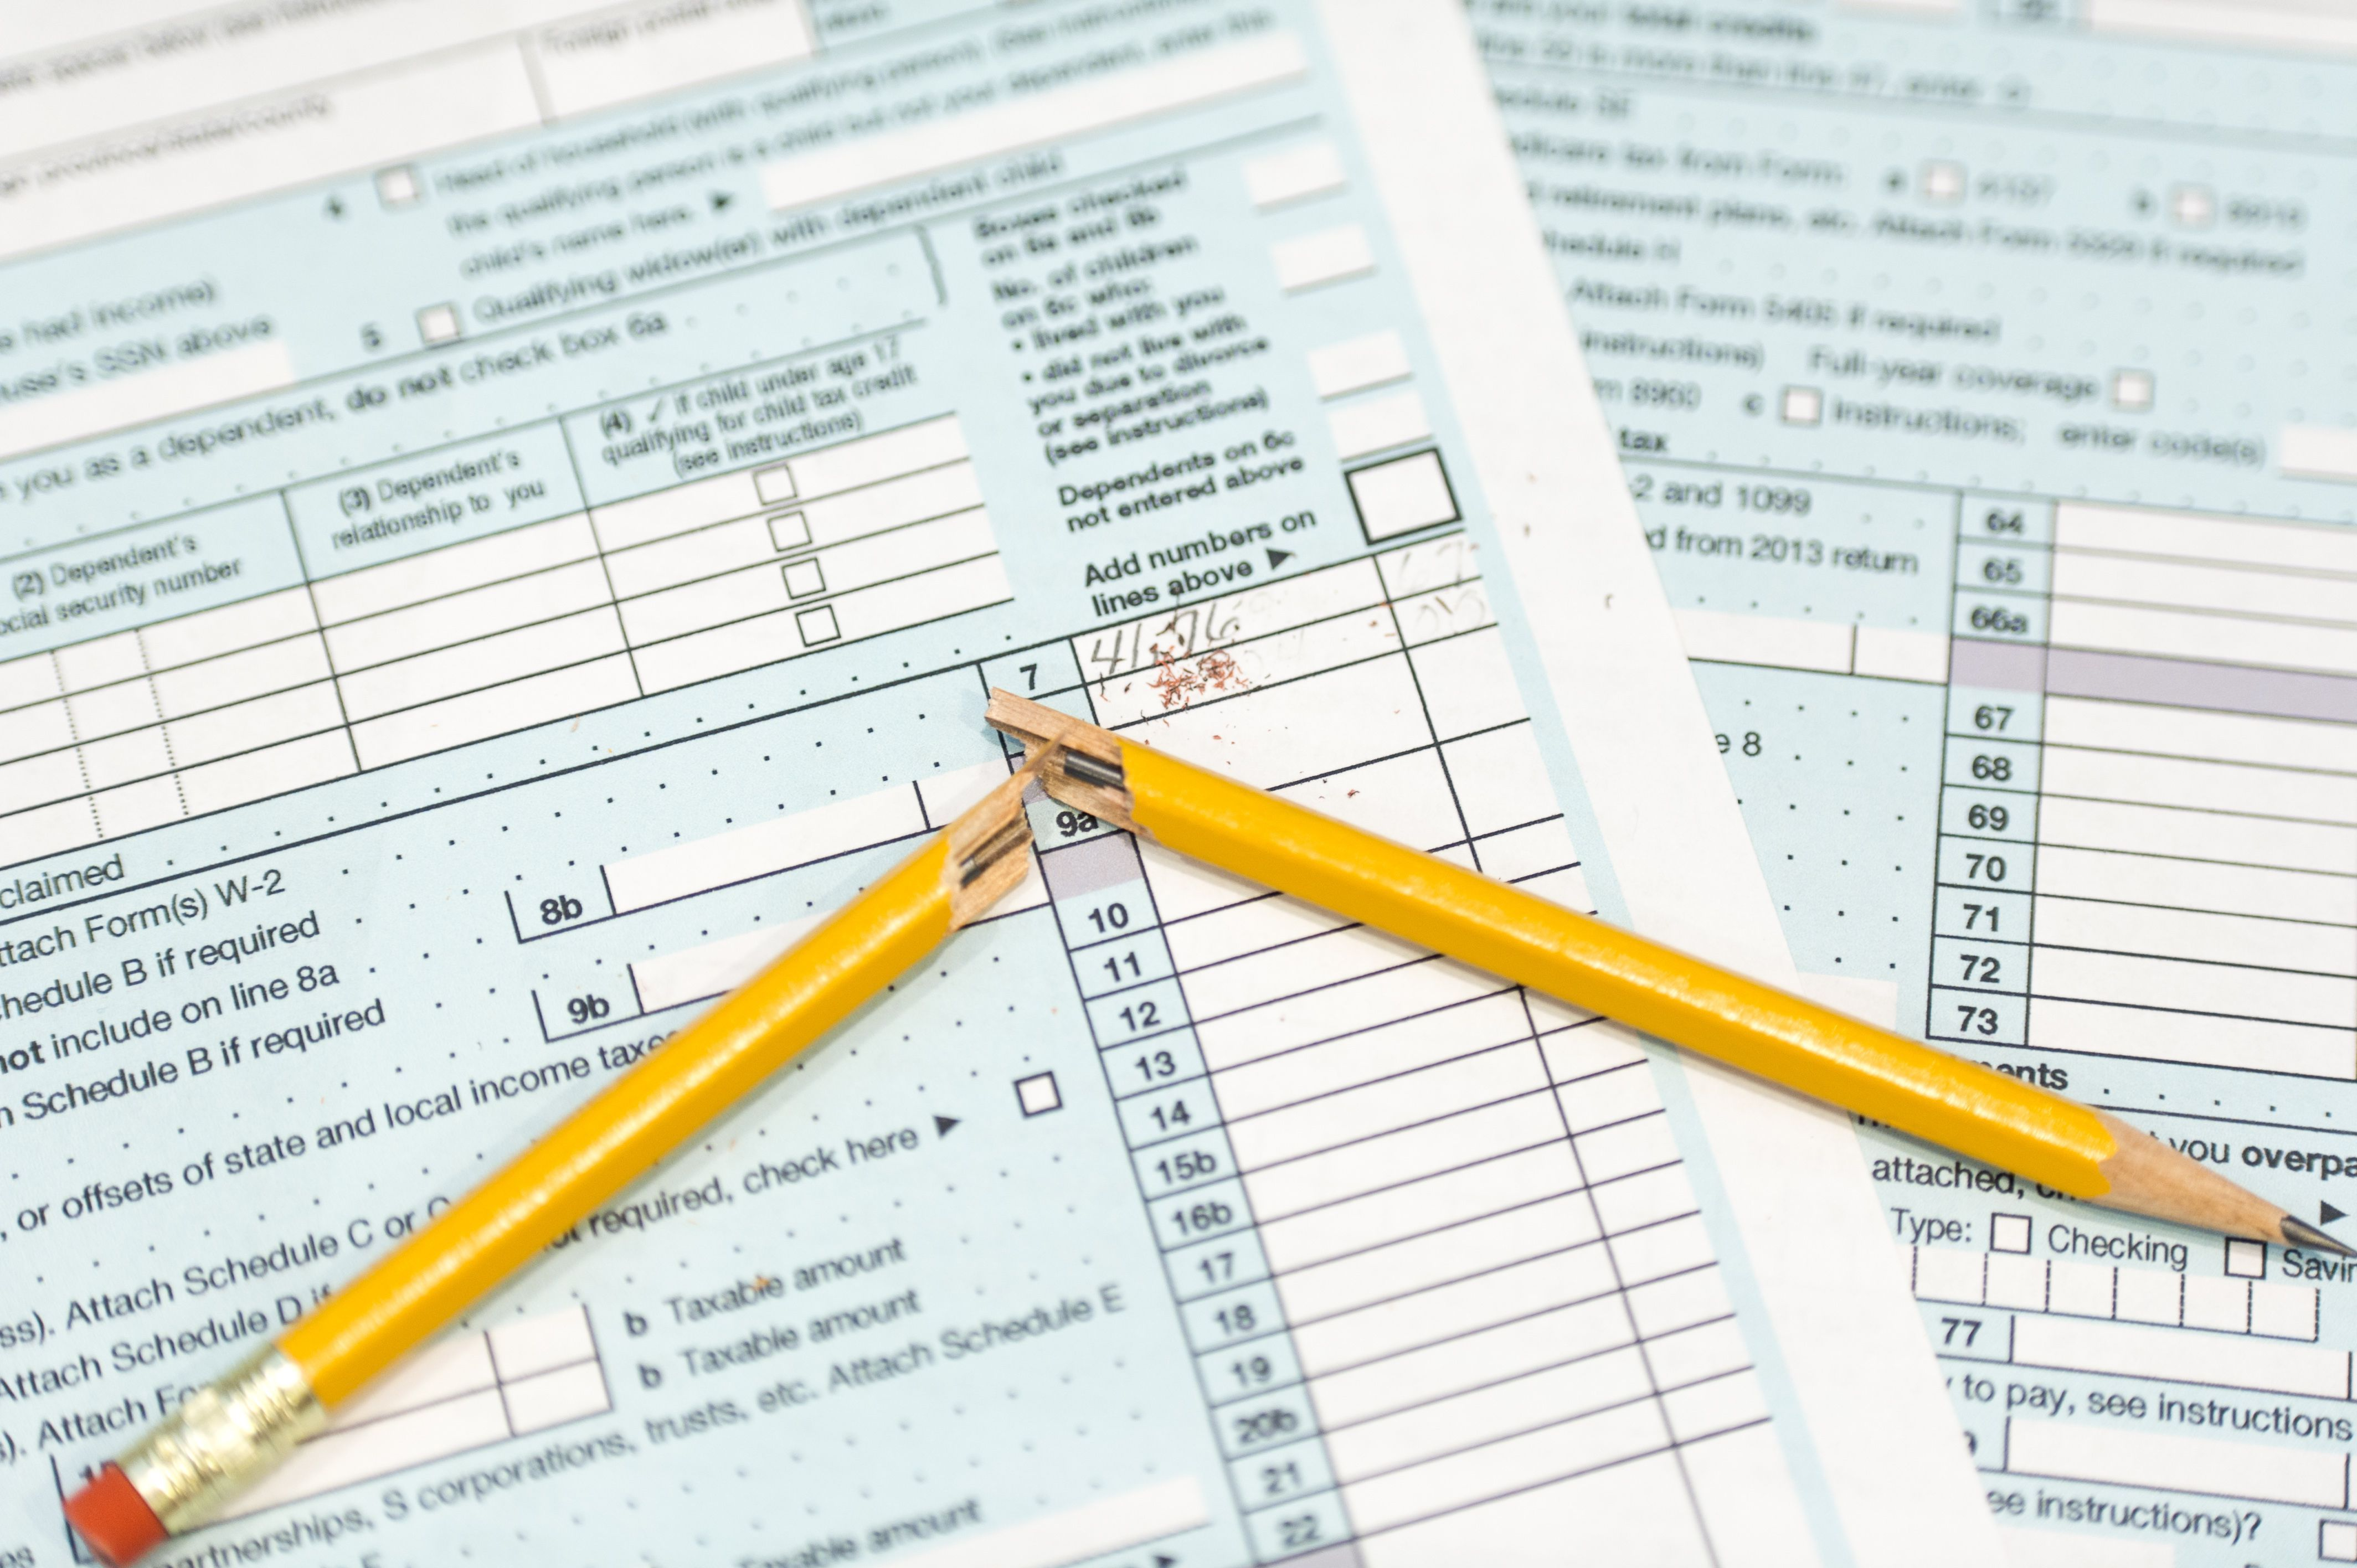 How To Complete Form X To Correct Tax Return Errors